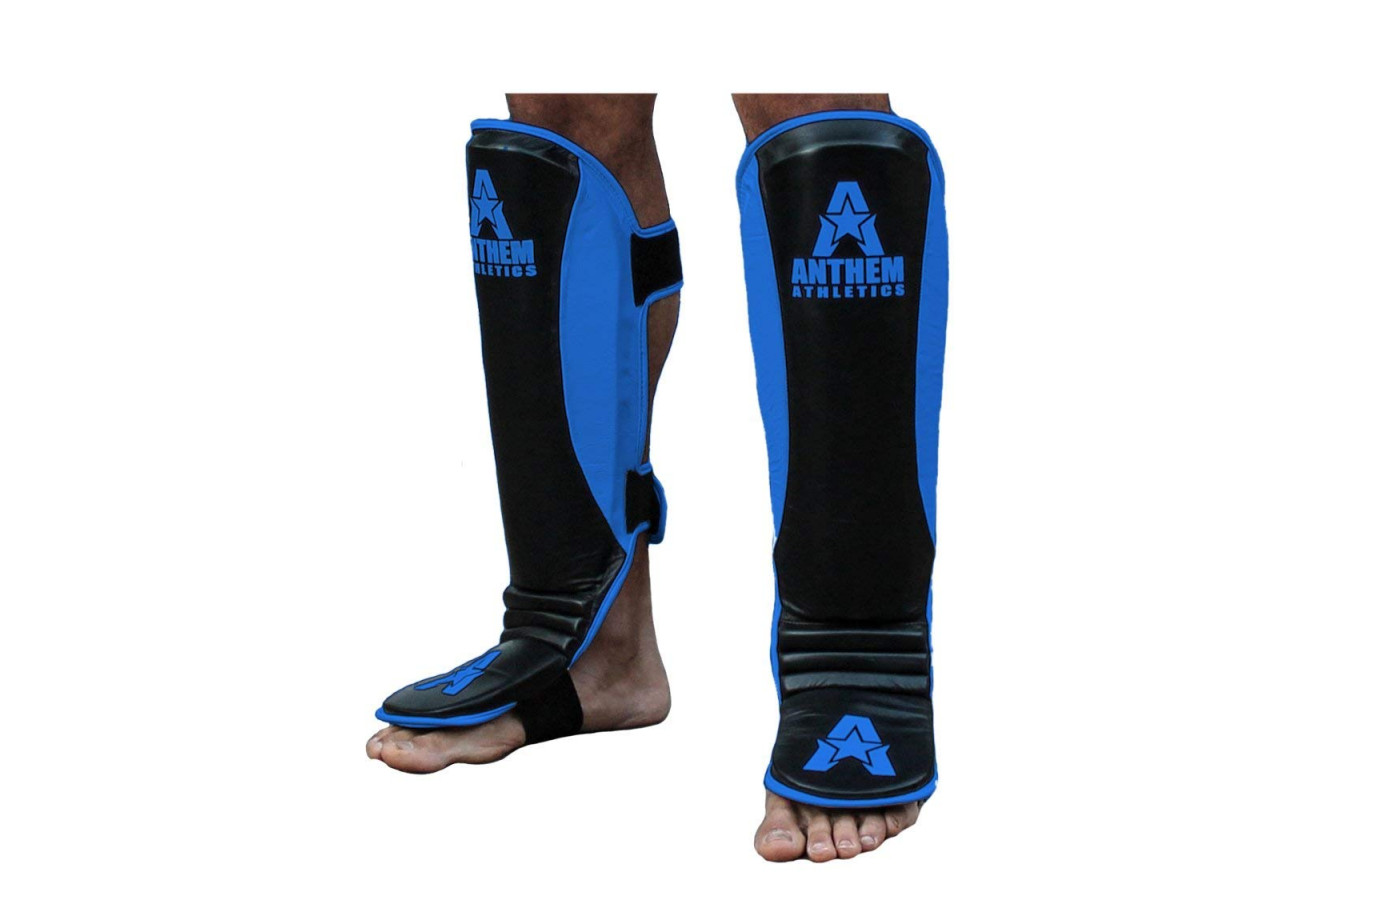 anthem athletics fortitude shin guard bright blue and black